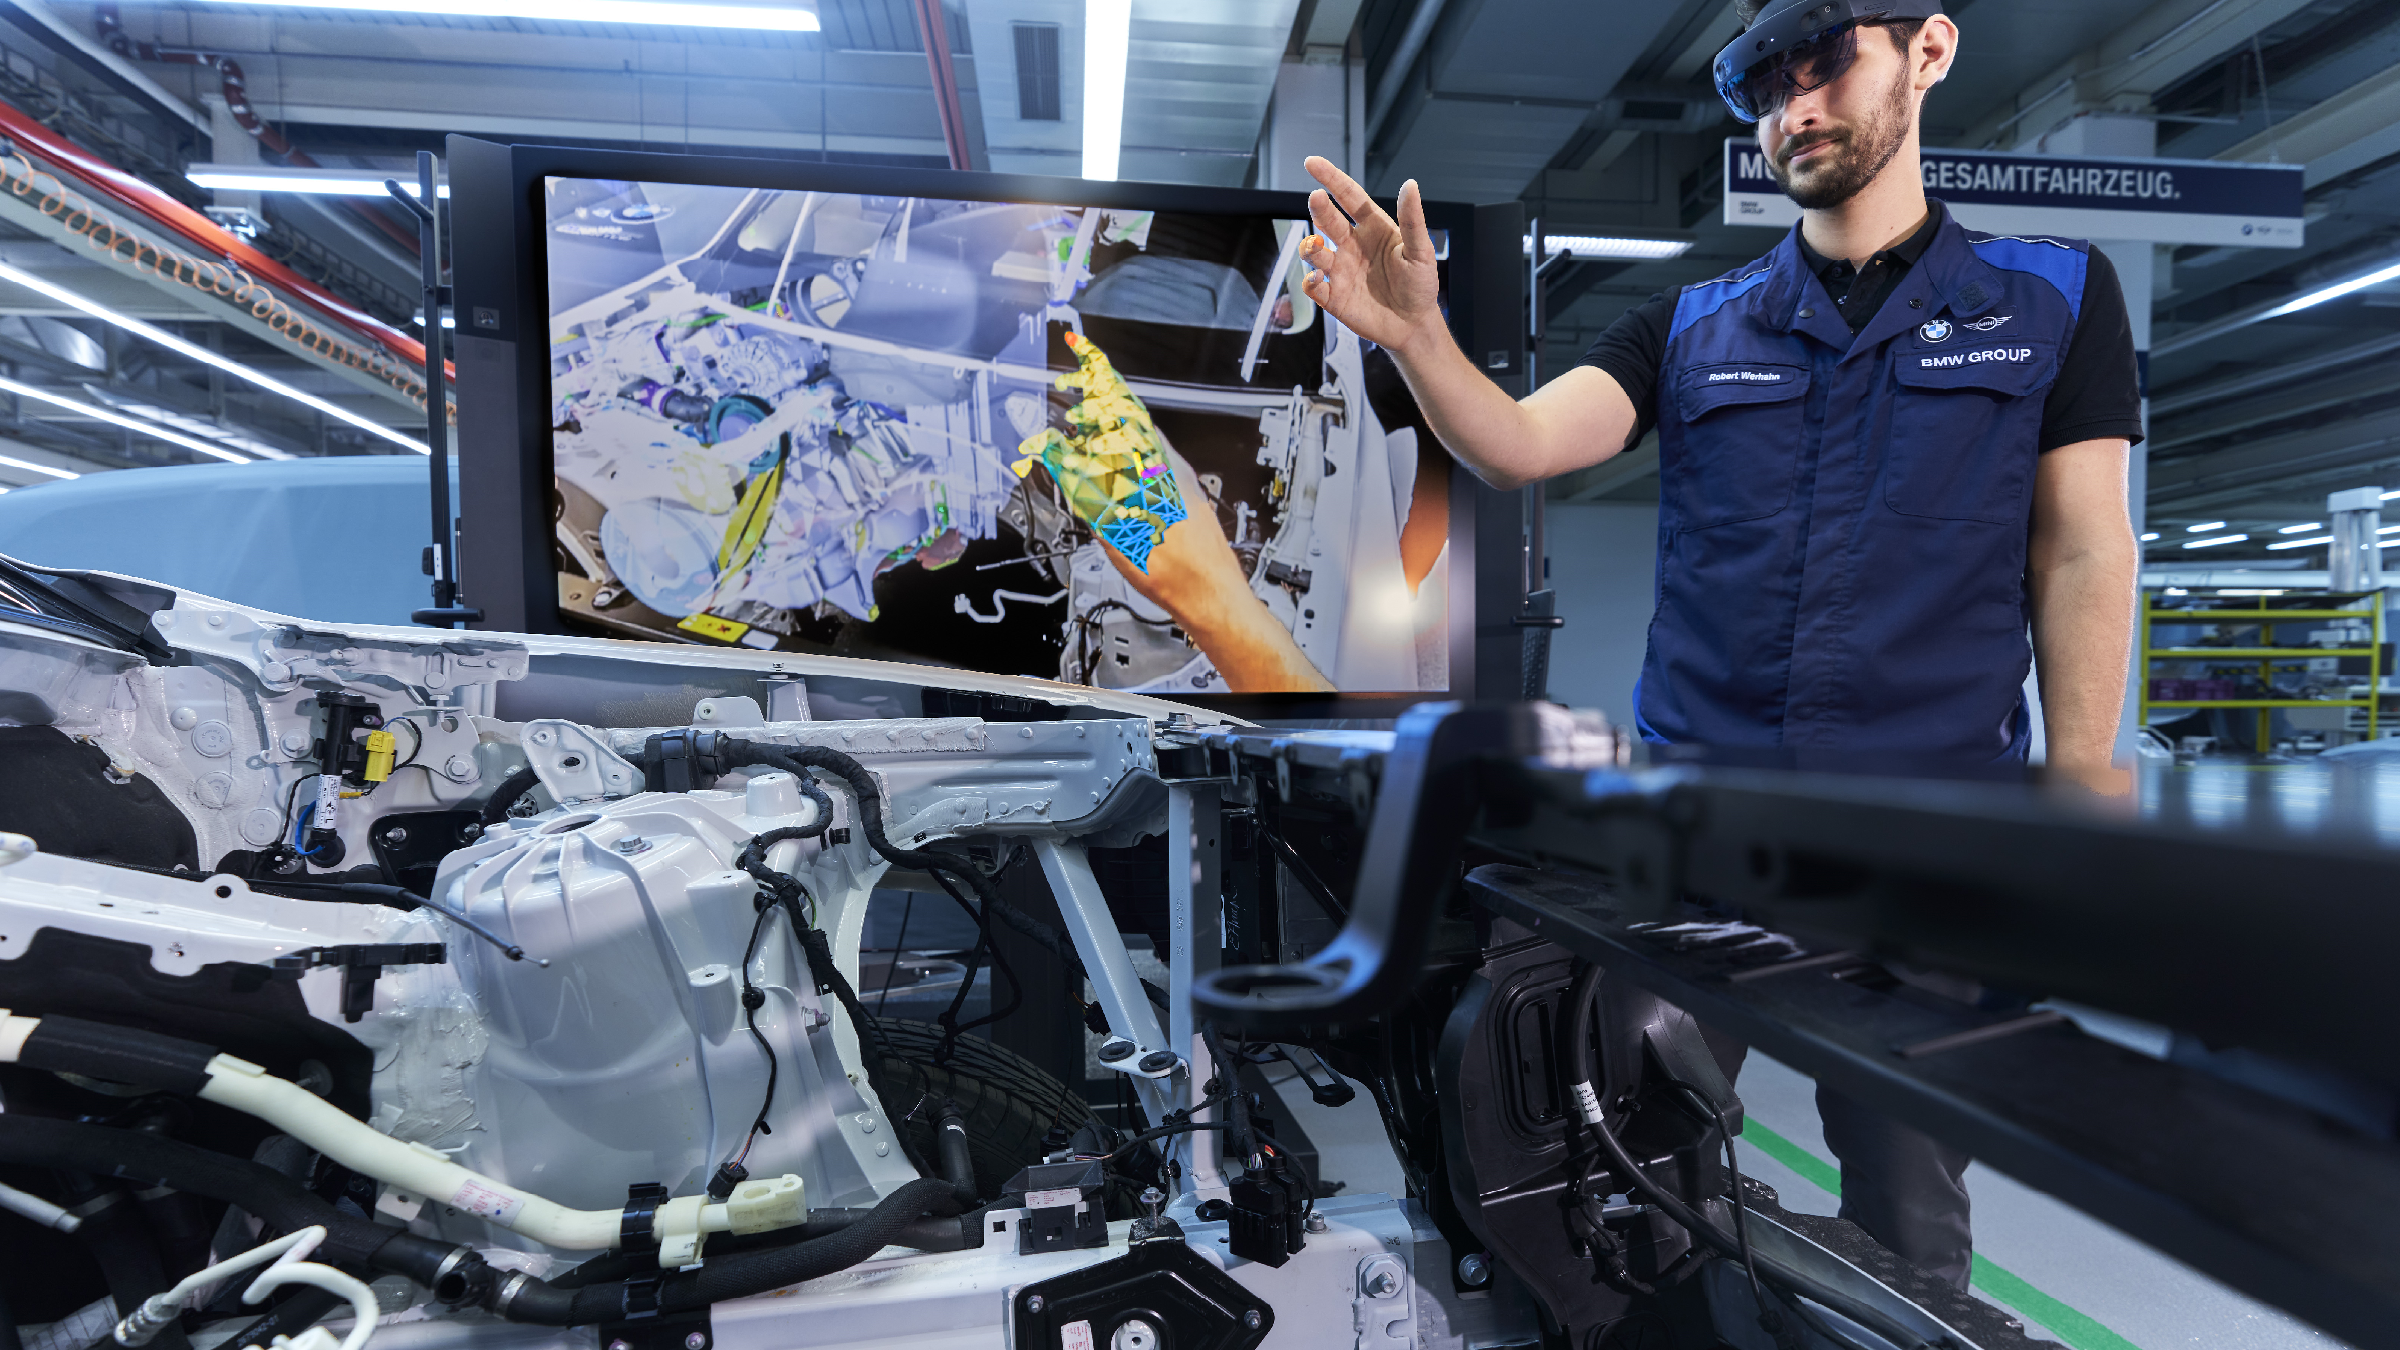 Bmw Uses Augmented Reality In Vehicle Prototyping Metrology And Quality News Online Magazine